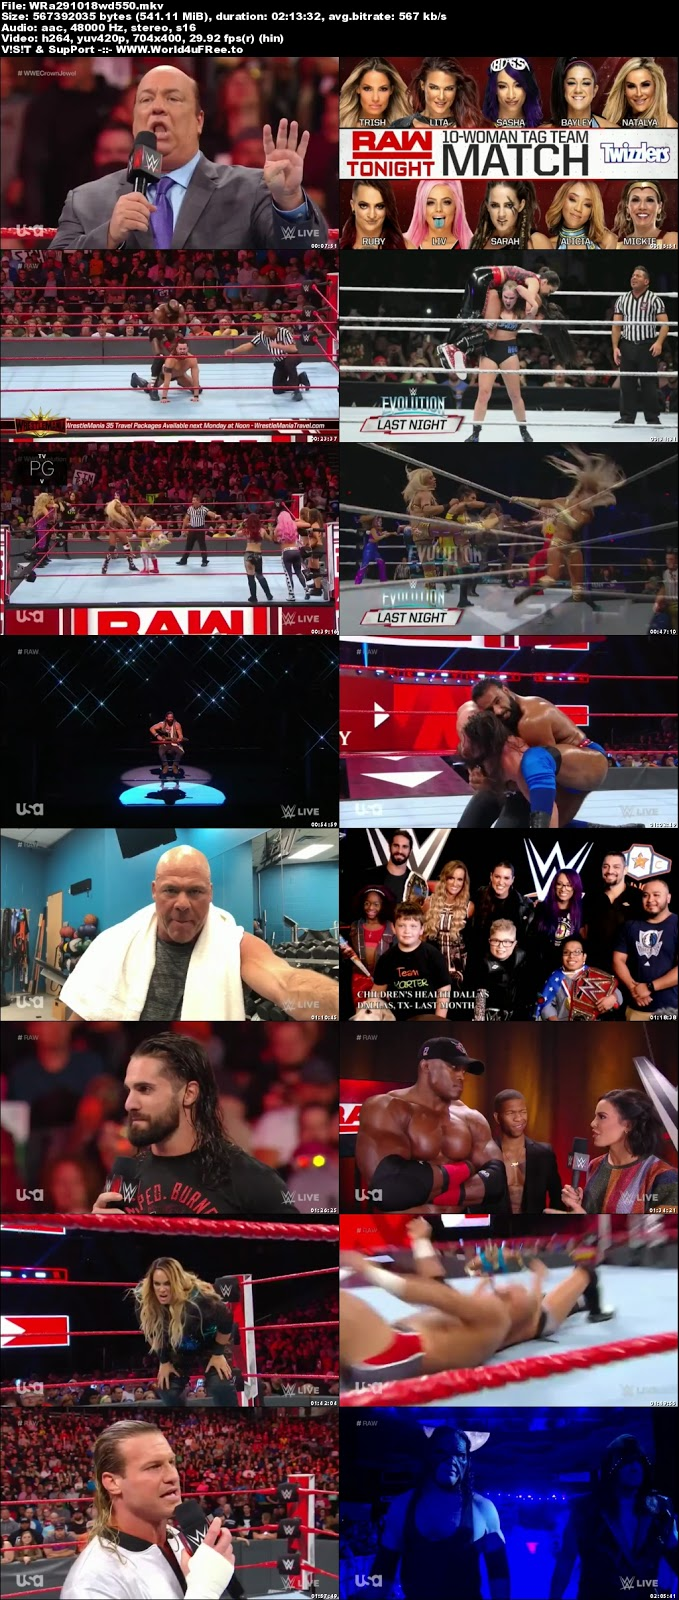 WWE Monday Night RAW 29 OCTOBER 2018 HDTV 480p 550MB x264 world4ufree.vip tv show wwe monday night raw wwe show monday night raw compressed small size free download or watch onlne at world4ufree.vip